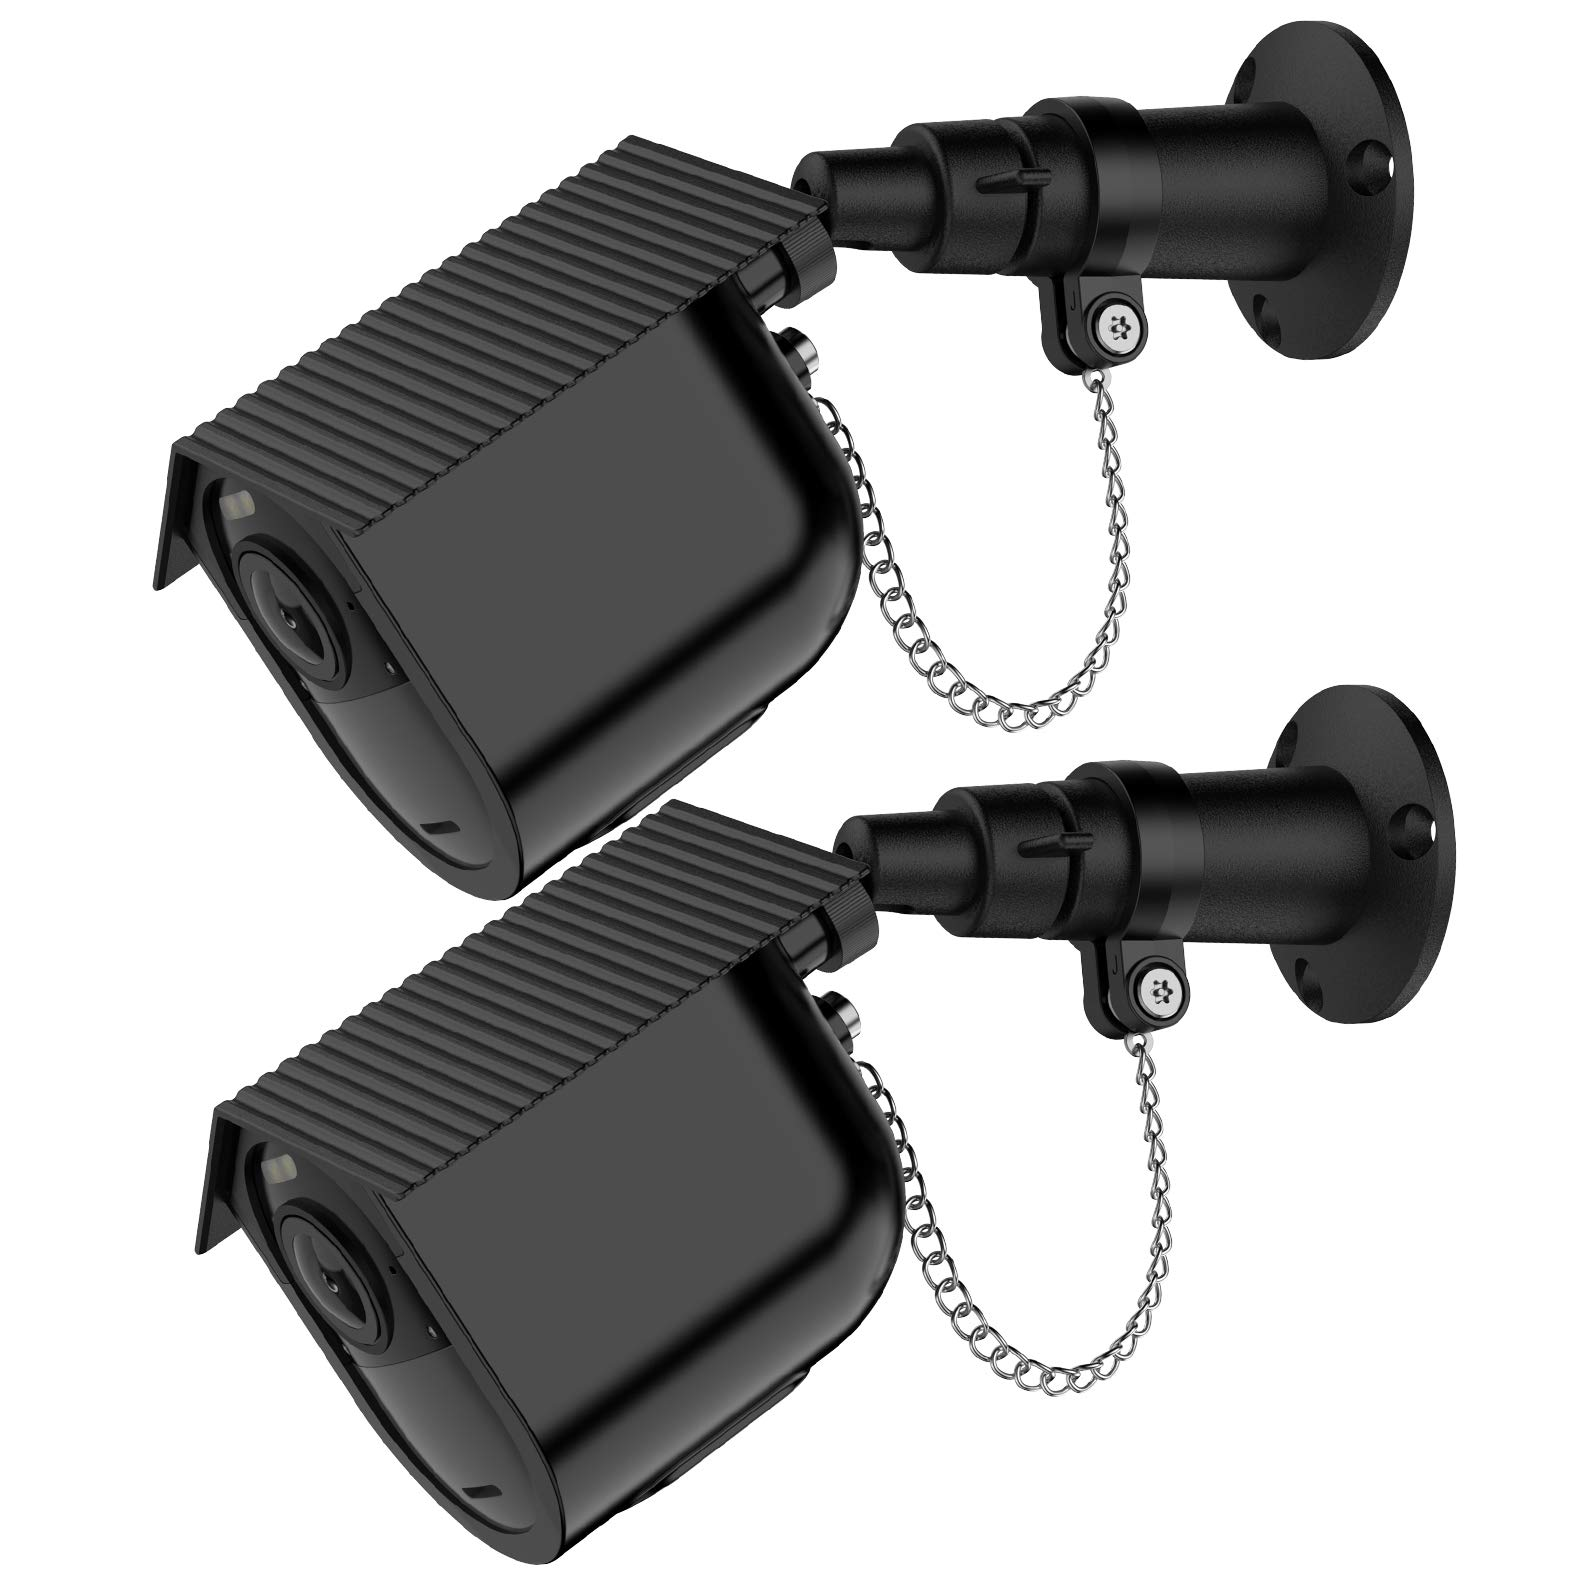 Wall Mount Bracket for Arlo Ultra - Adjustable Outdoor Security Mount with Anti-Theft Chain Lock and Waterproof Cover Case for Arlo Ultra 4K HD by OkeMeeo(Black, 2 Pack) by OkeMeeo